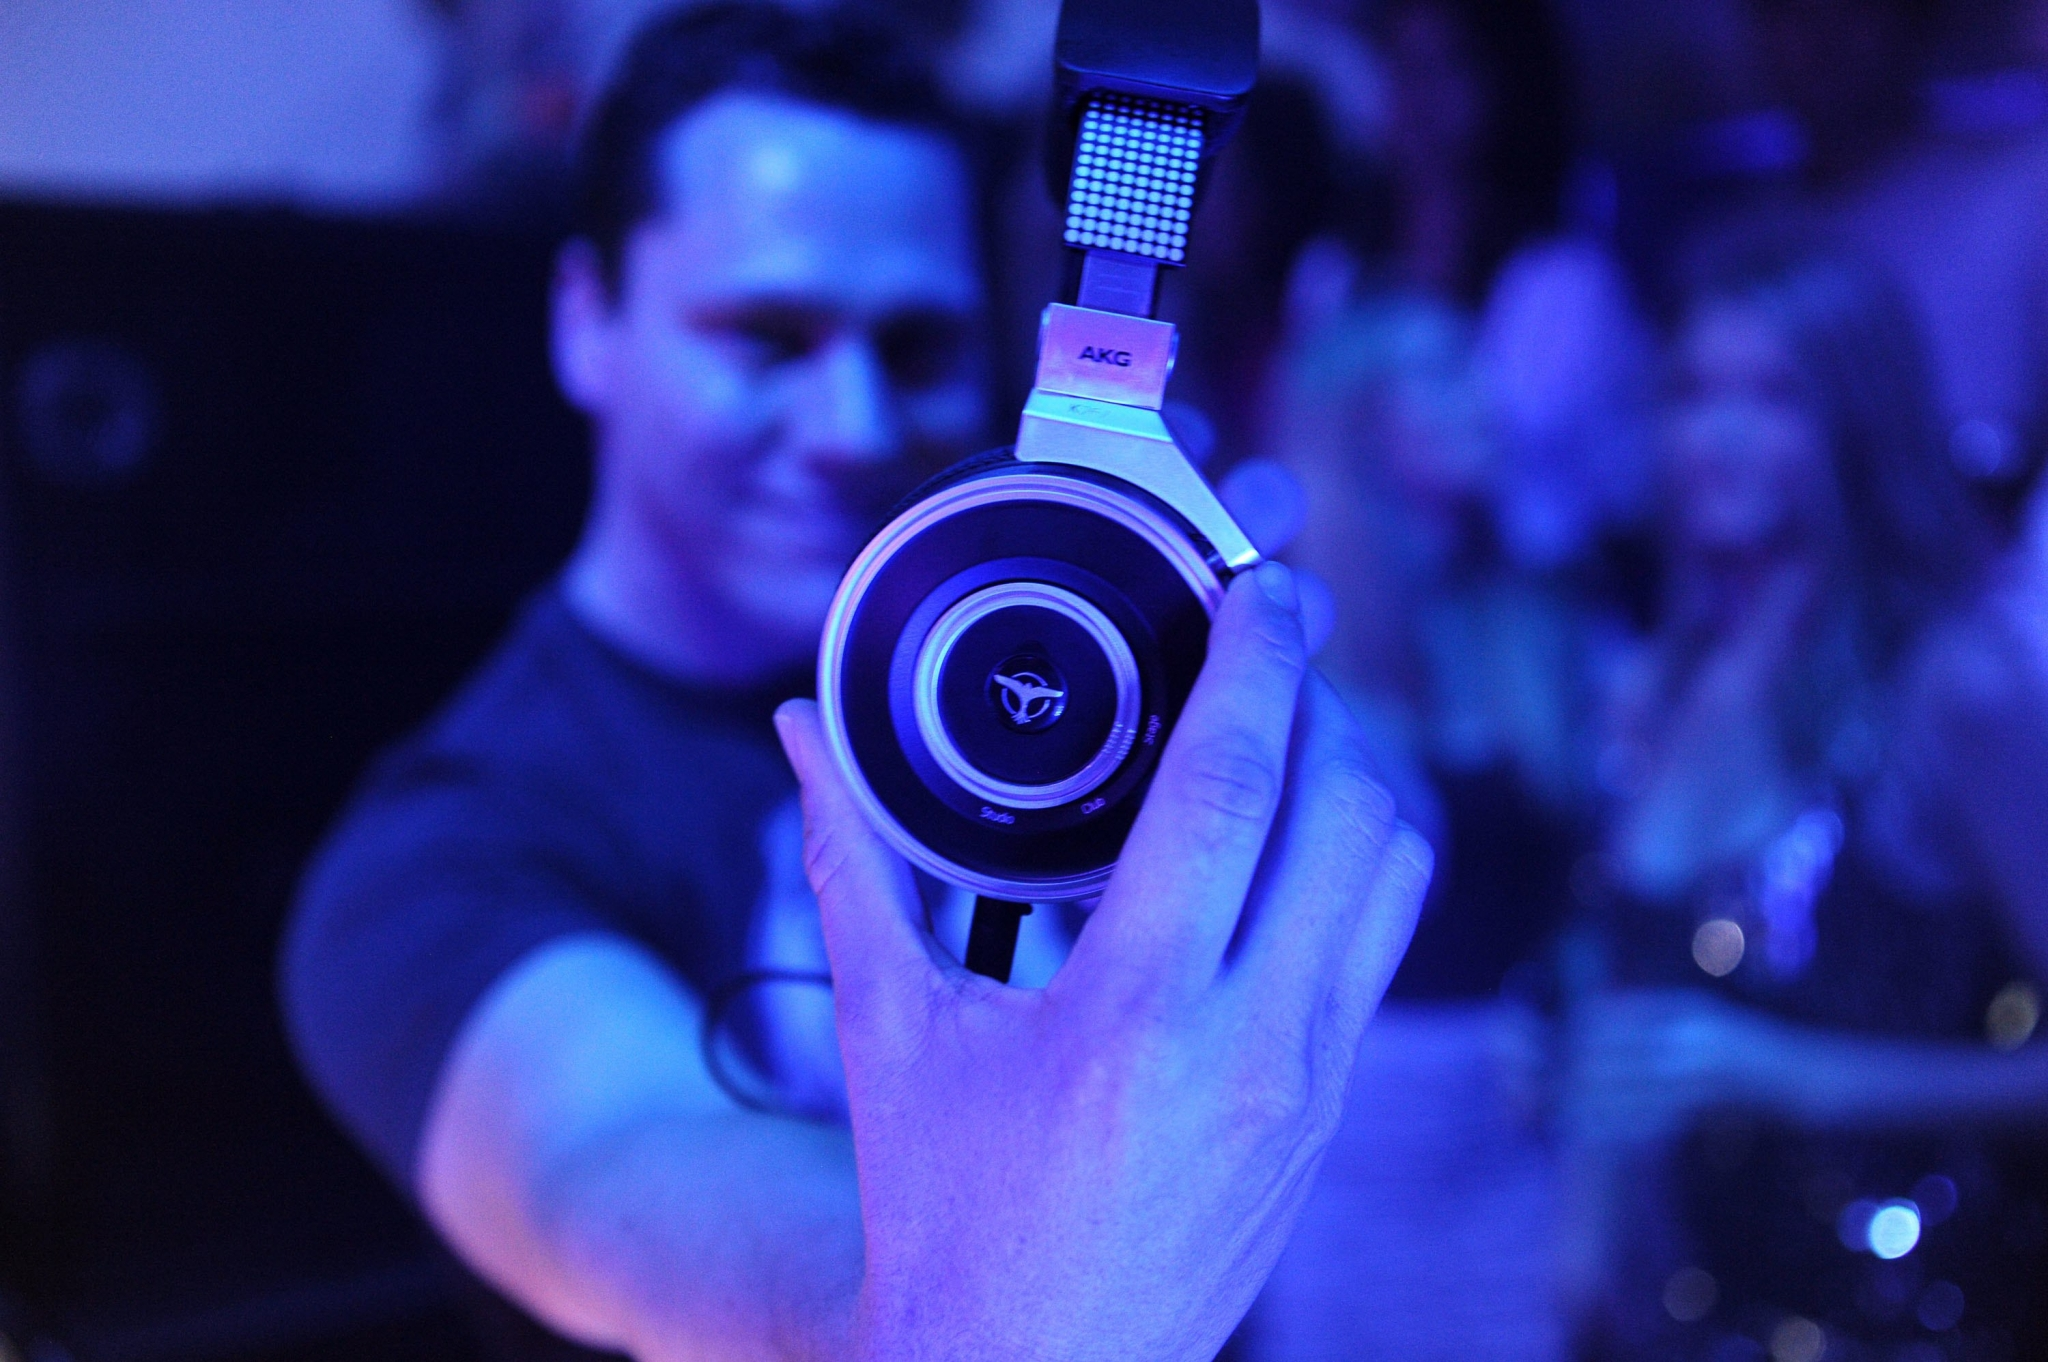 Tiesto Wallpapers Images Photos Pictures Backgrounds